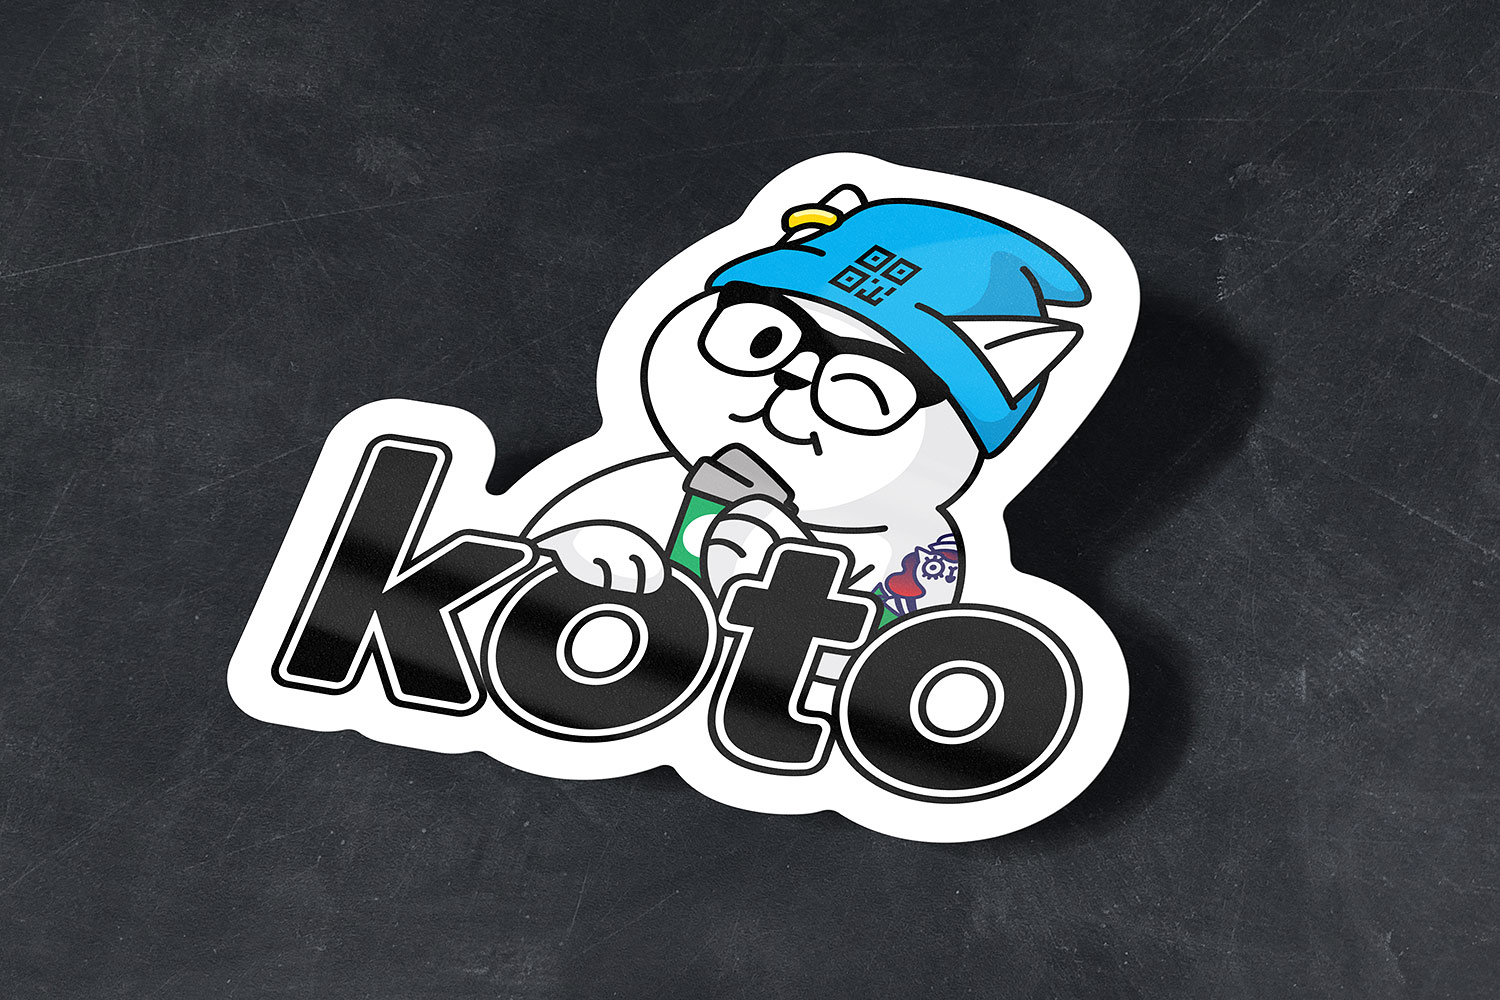 koto stickers. Bank character QR cat hipster with coffee.